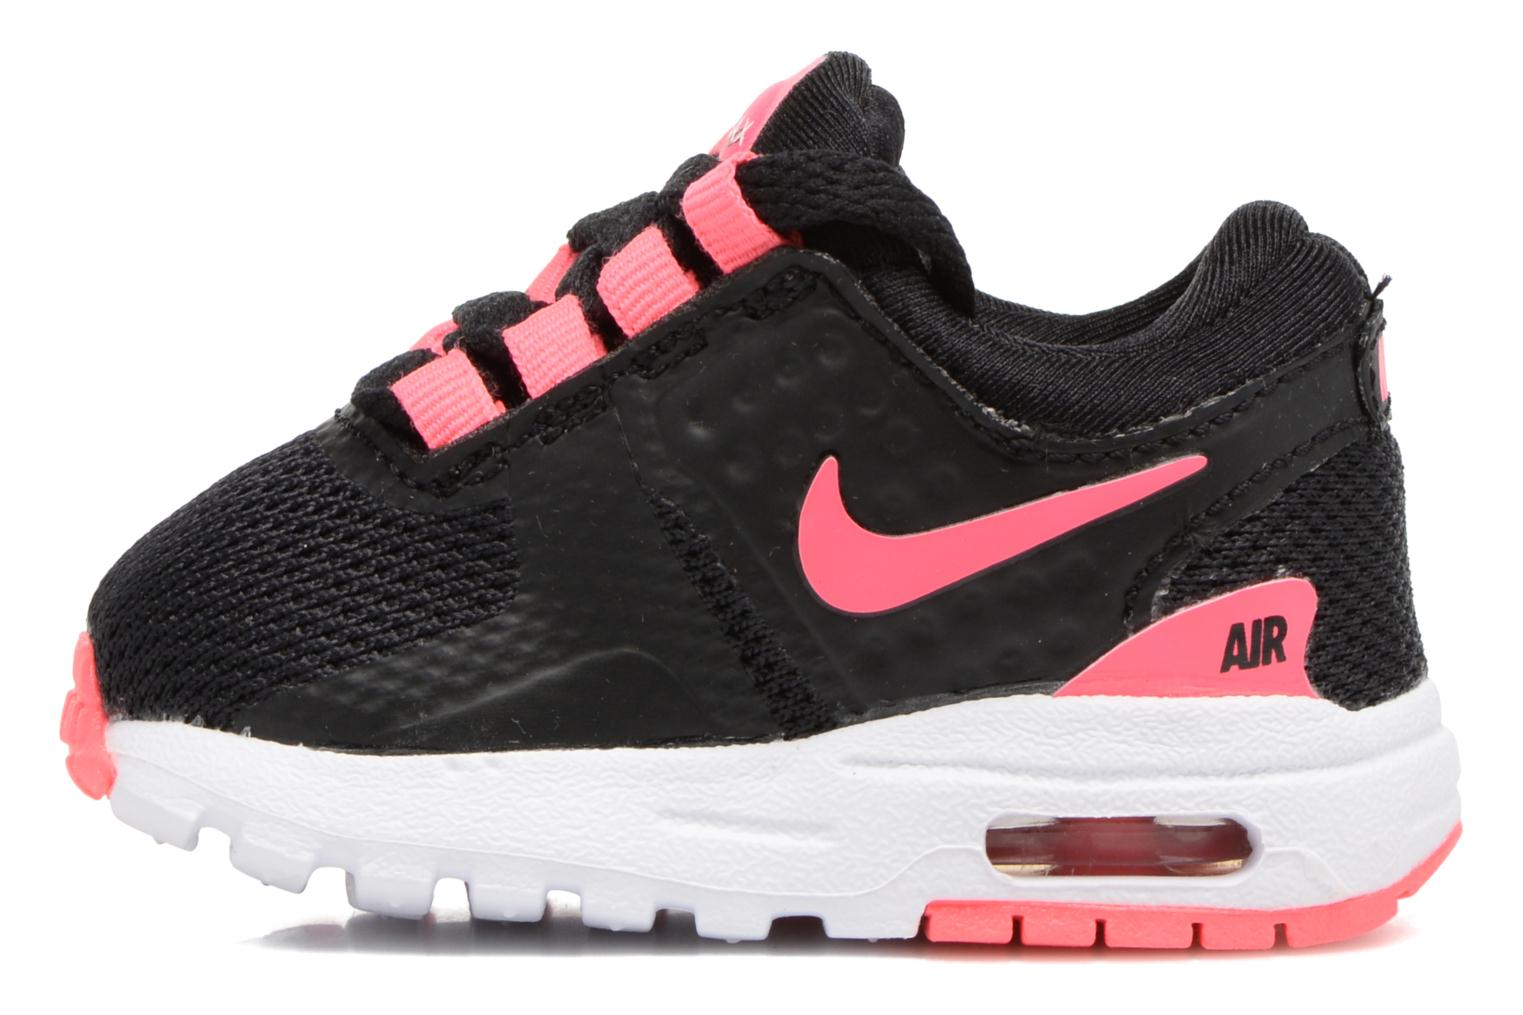 Nike Air Max Zero Essential Td Black/Racer Pink-White